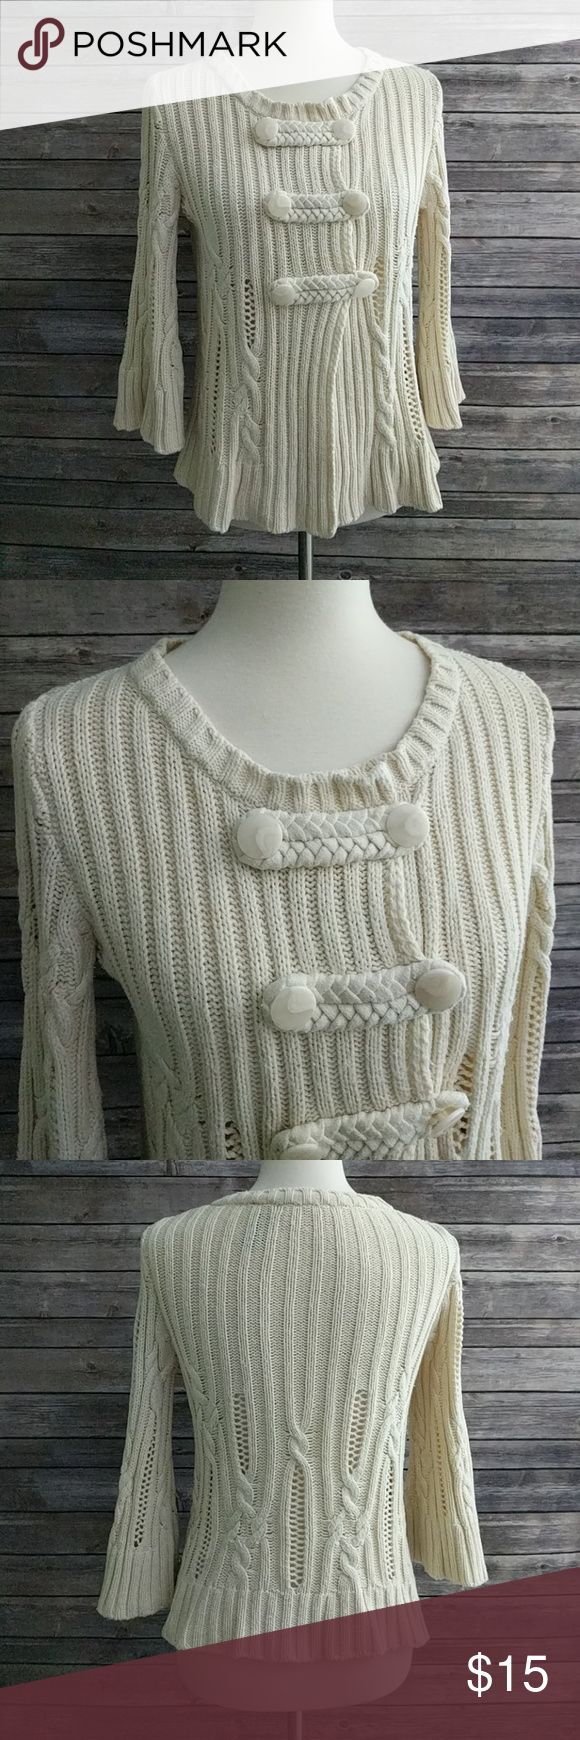 "Heather B 3/4 Bell Sleeve Sweater Cream sweater in great used condition, some pilling. Bust 18"" laying flat. Length approximately 22"". Heather B Sweaters Cardigans"